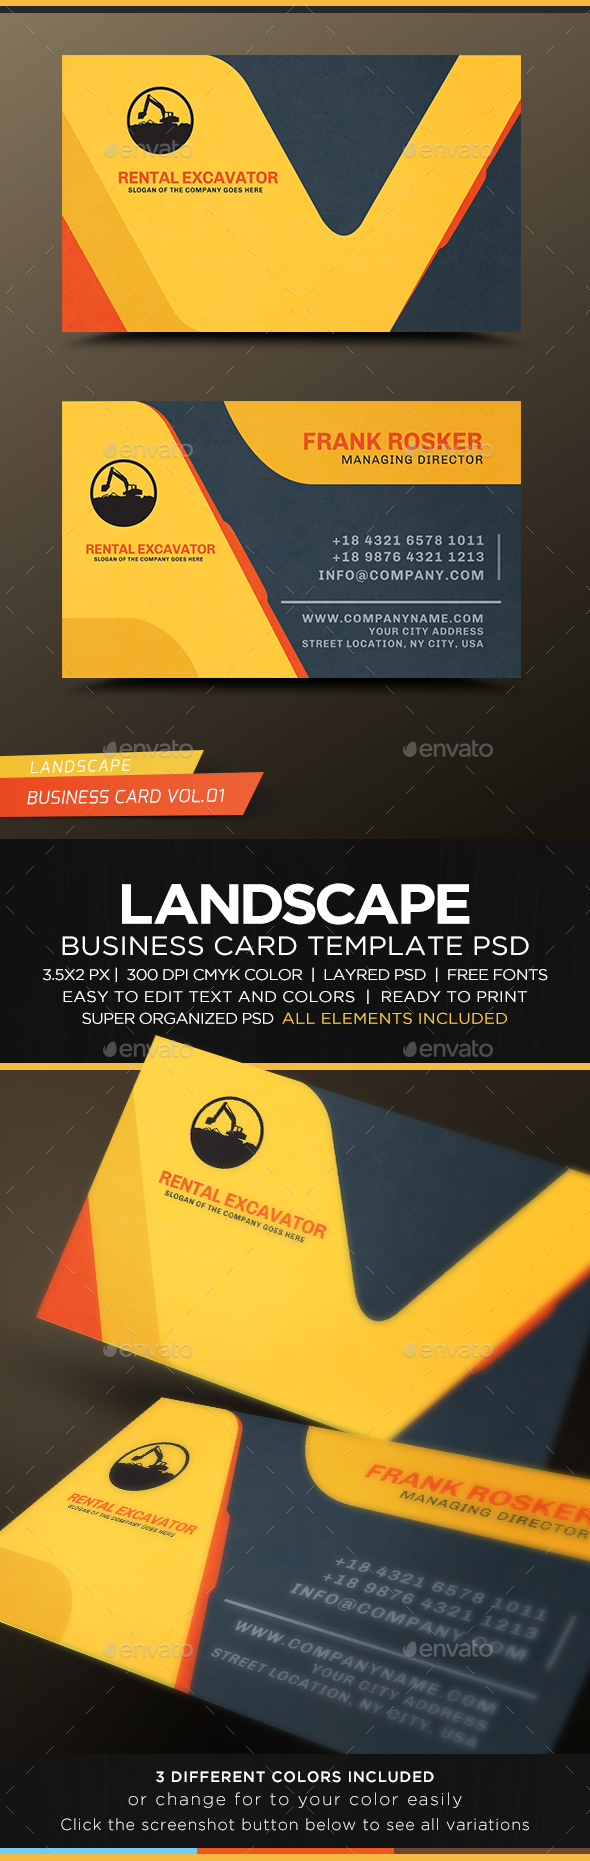 Landscape Business Card Vol.01 | Business Card | Pinterest ...